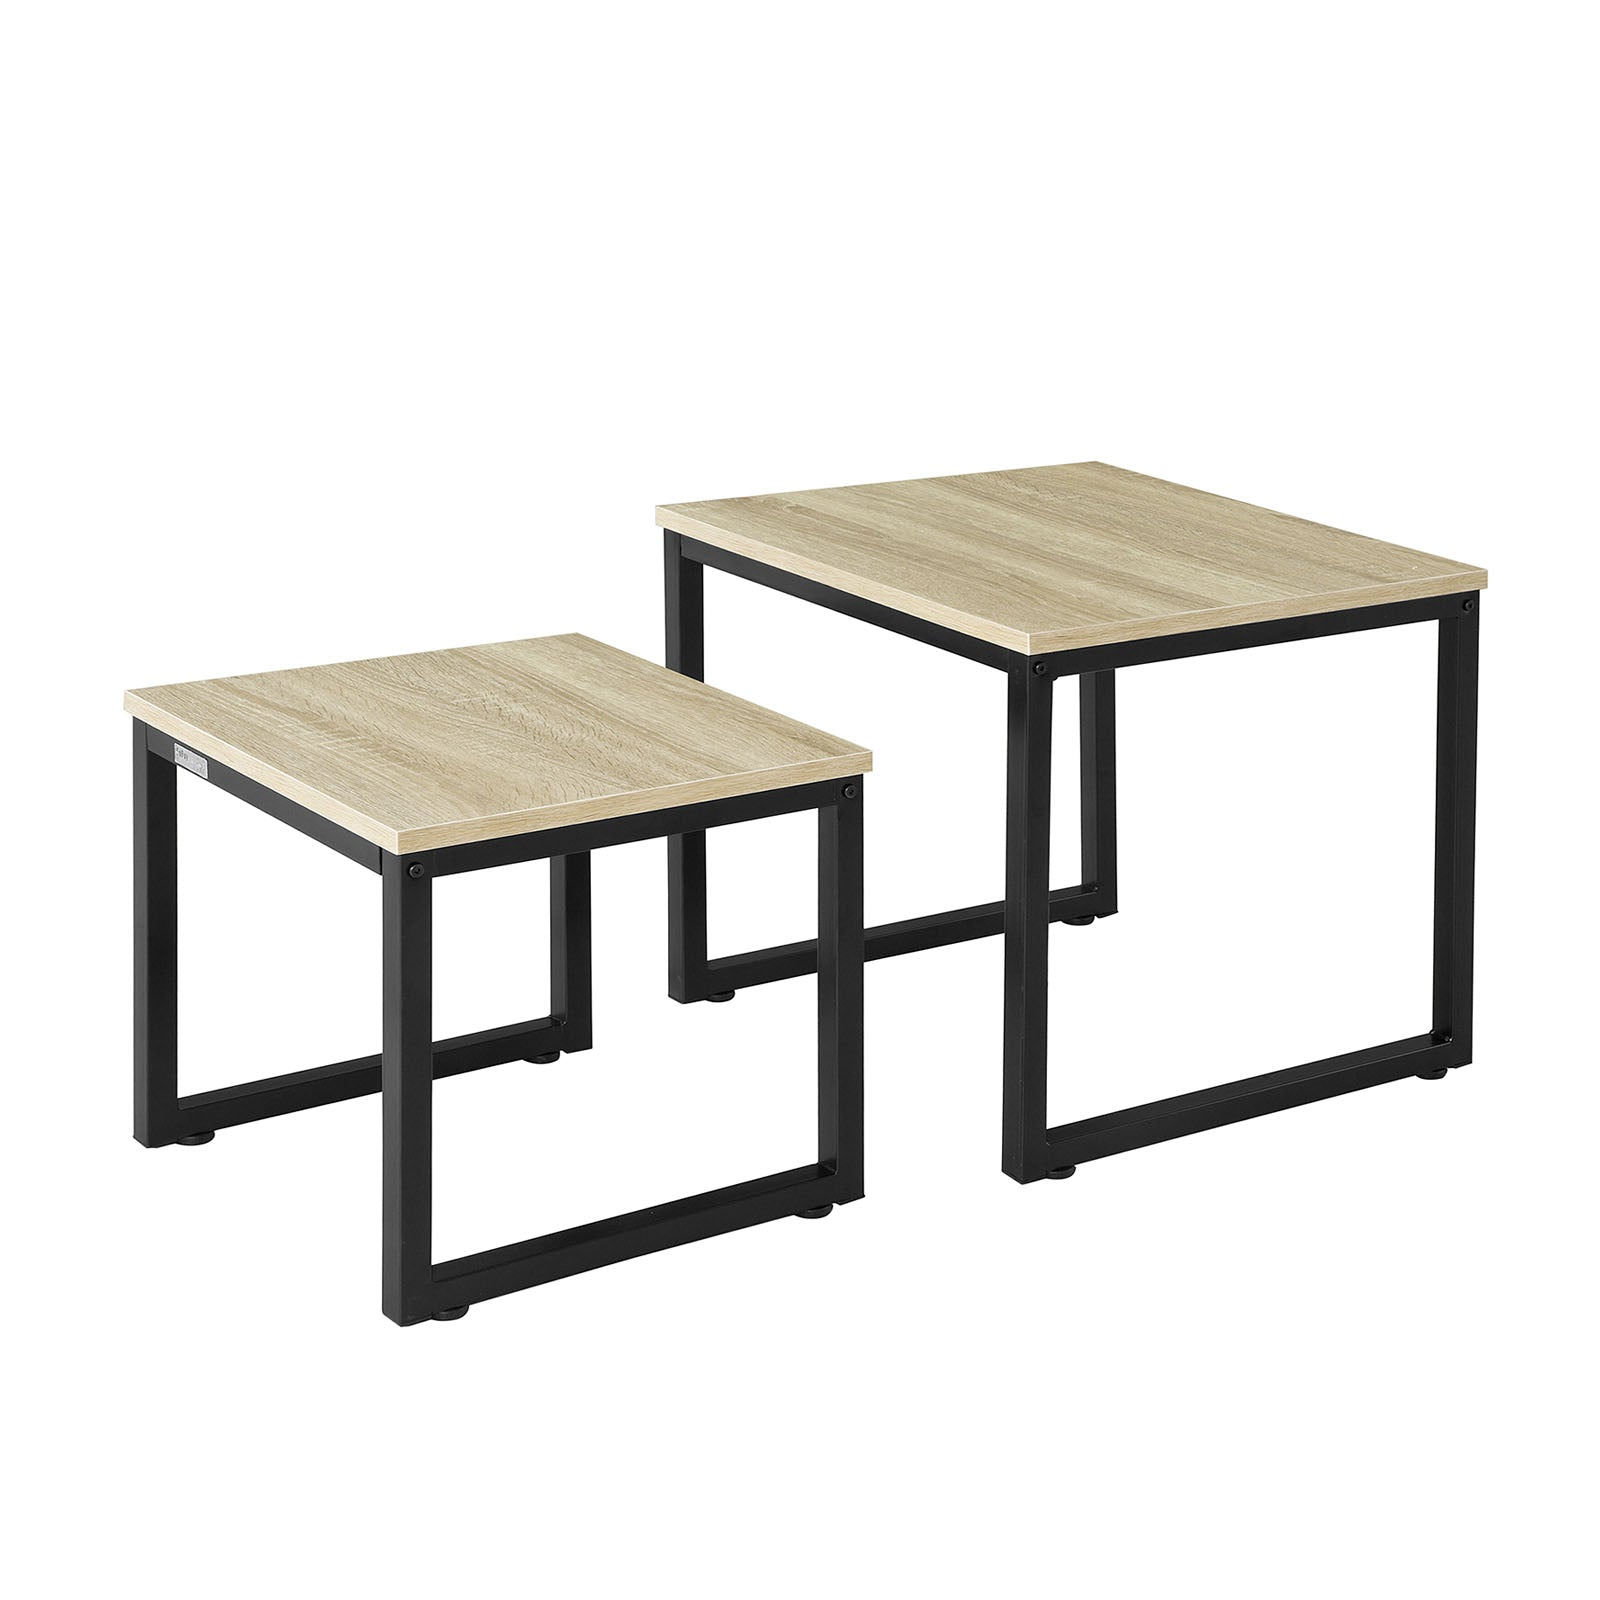 SoBuy Coffee Table Sofa Coffee Table Living Room Low Coffee Table 2 Pieces Fbt42-N